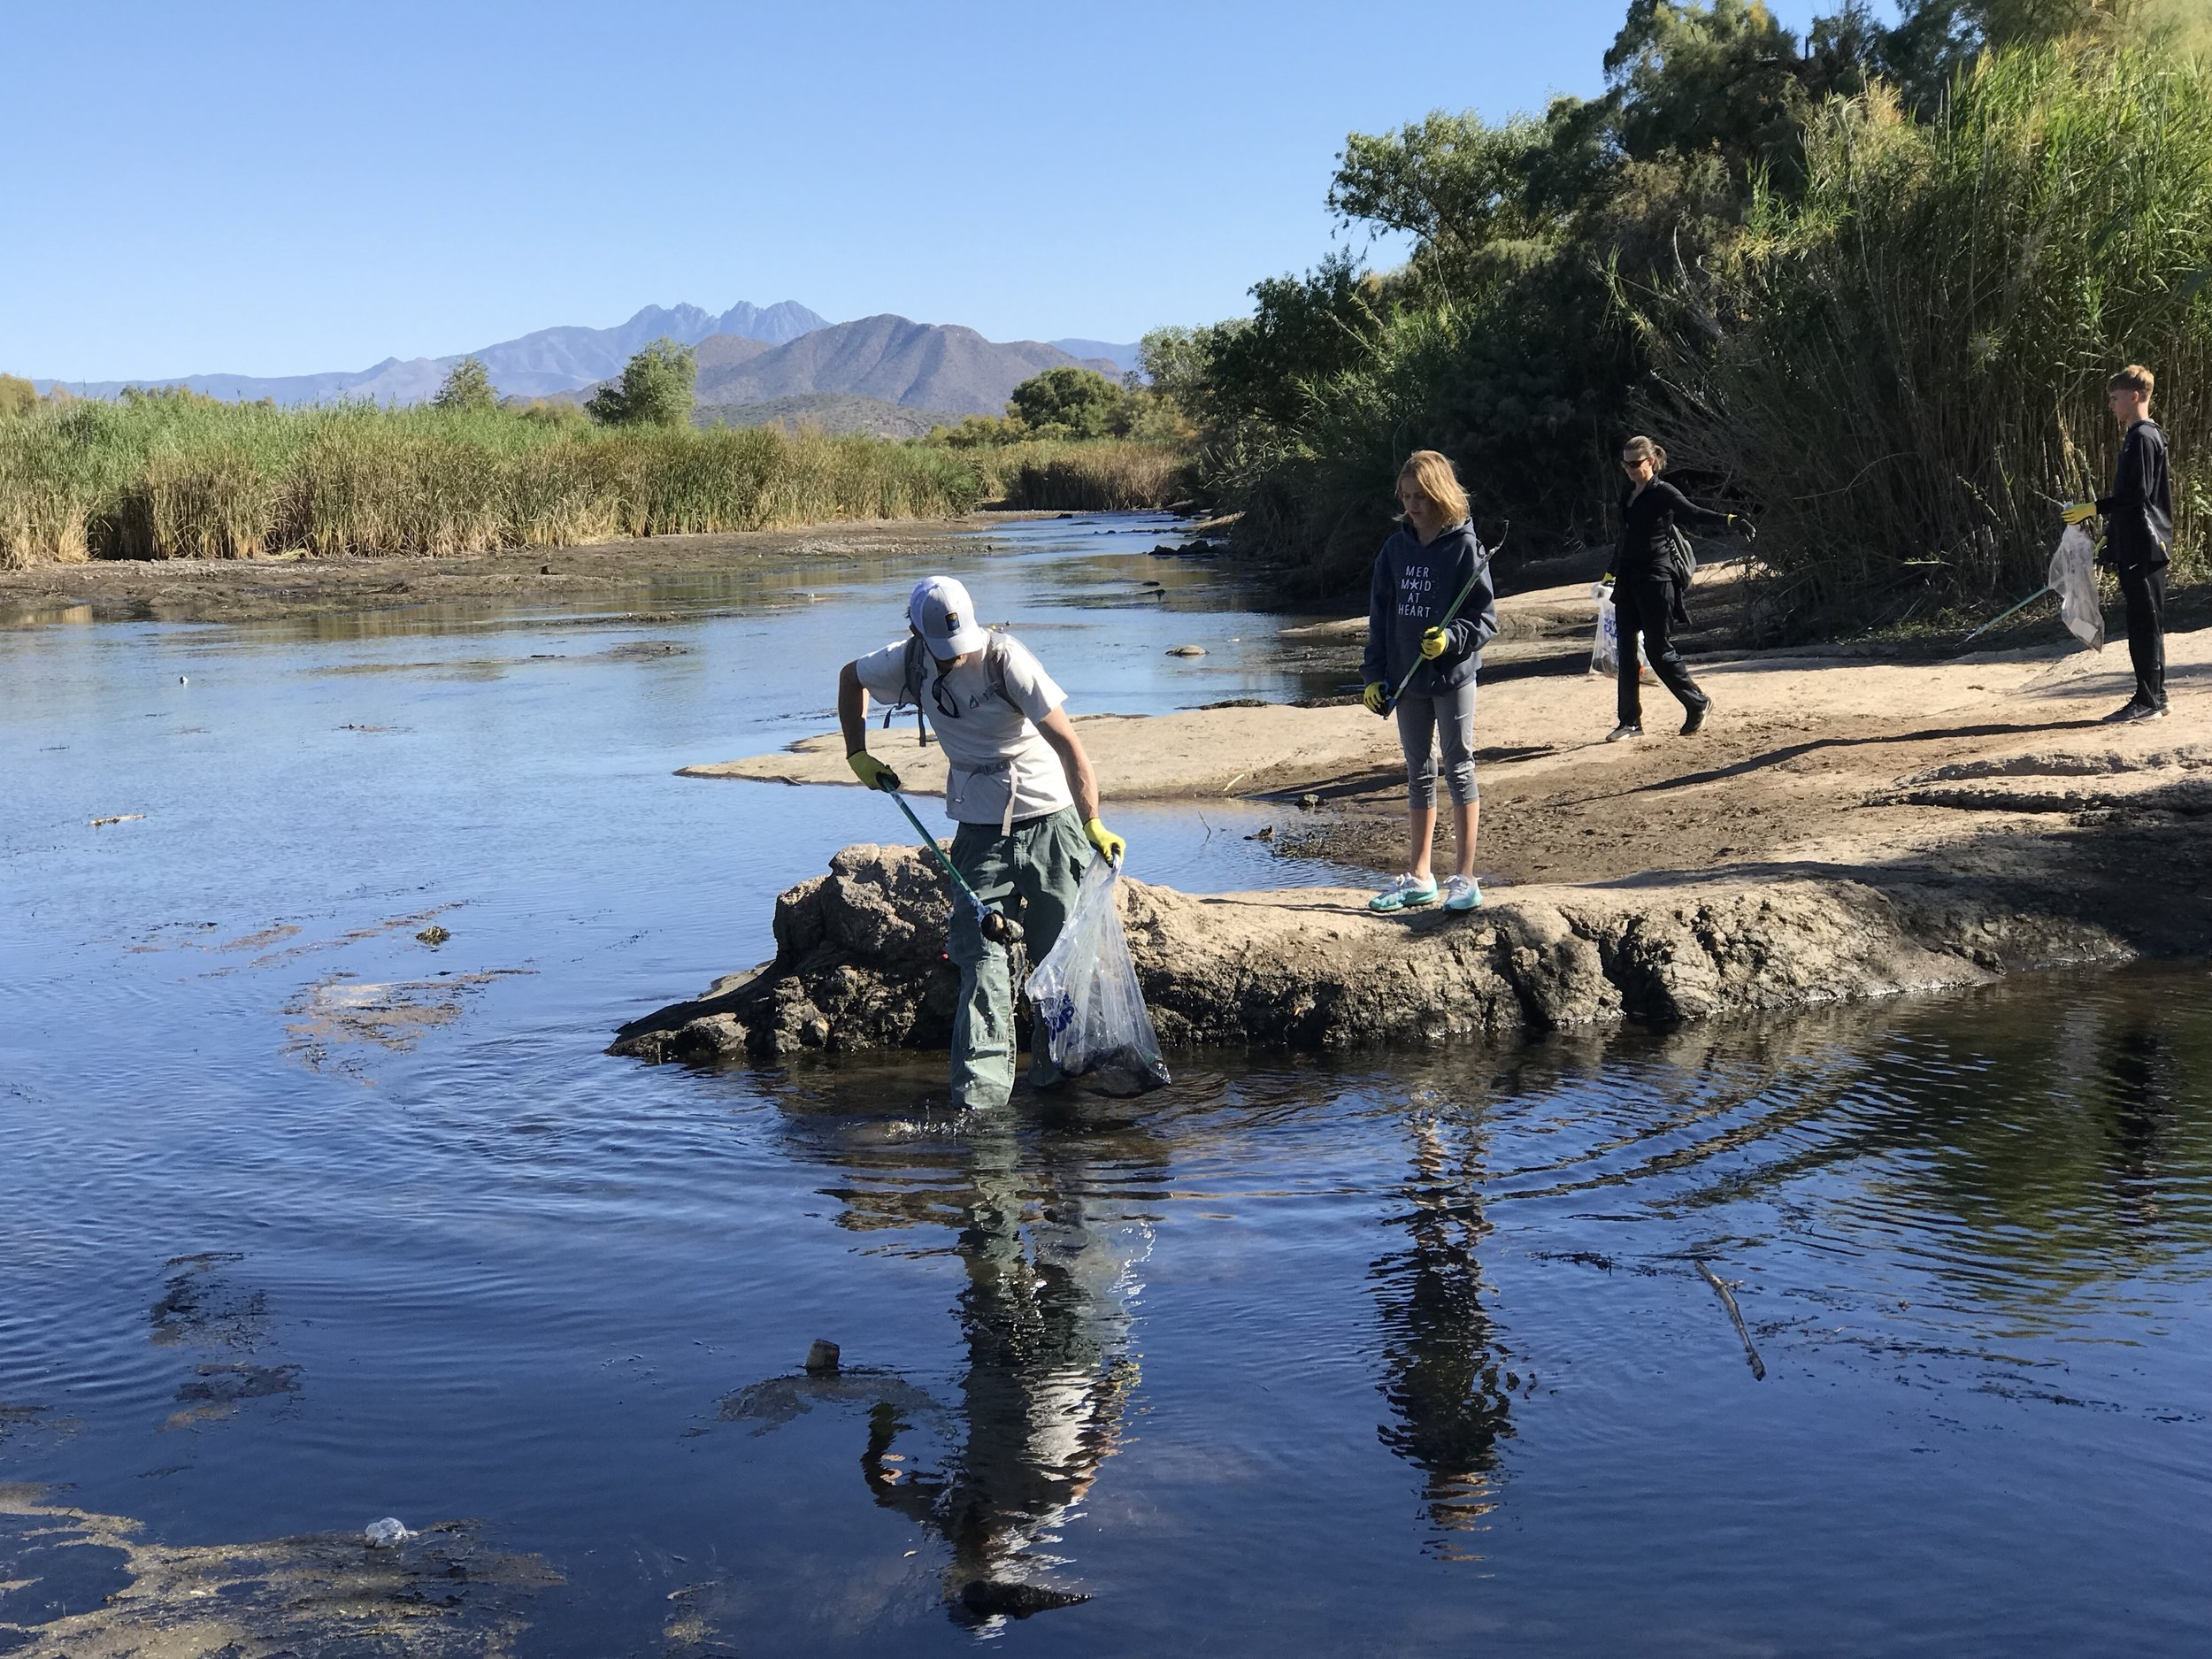 11/23/18 People's Mortgage Company Lower Salt River Cleanup